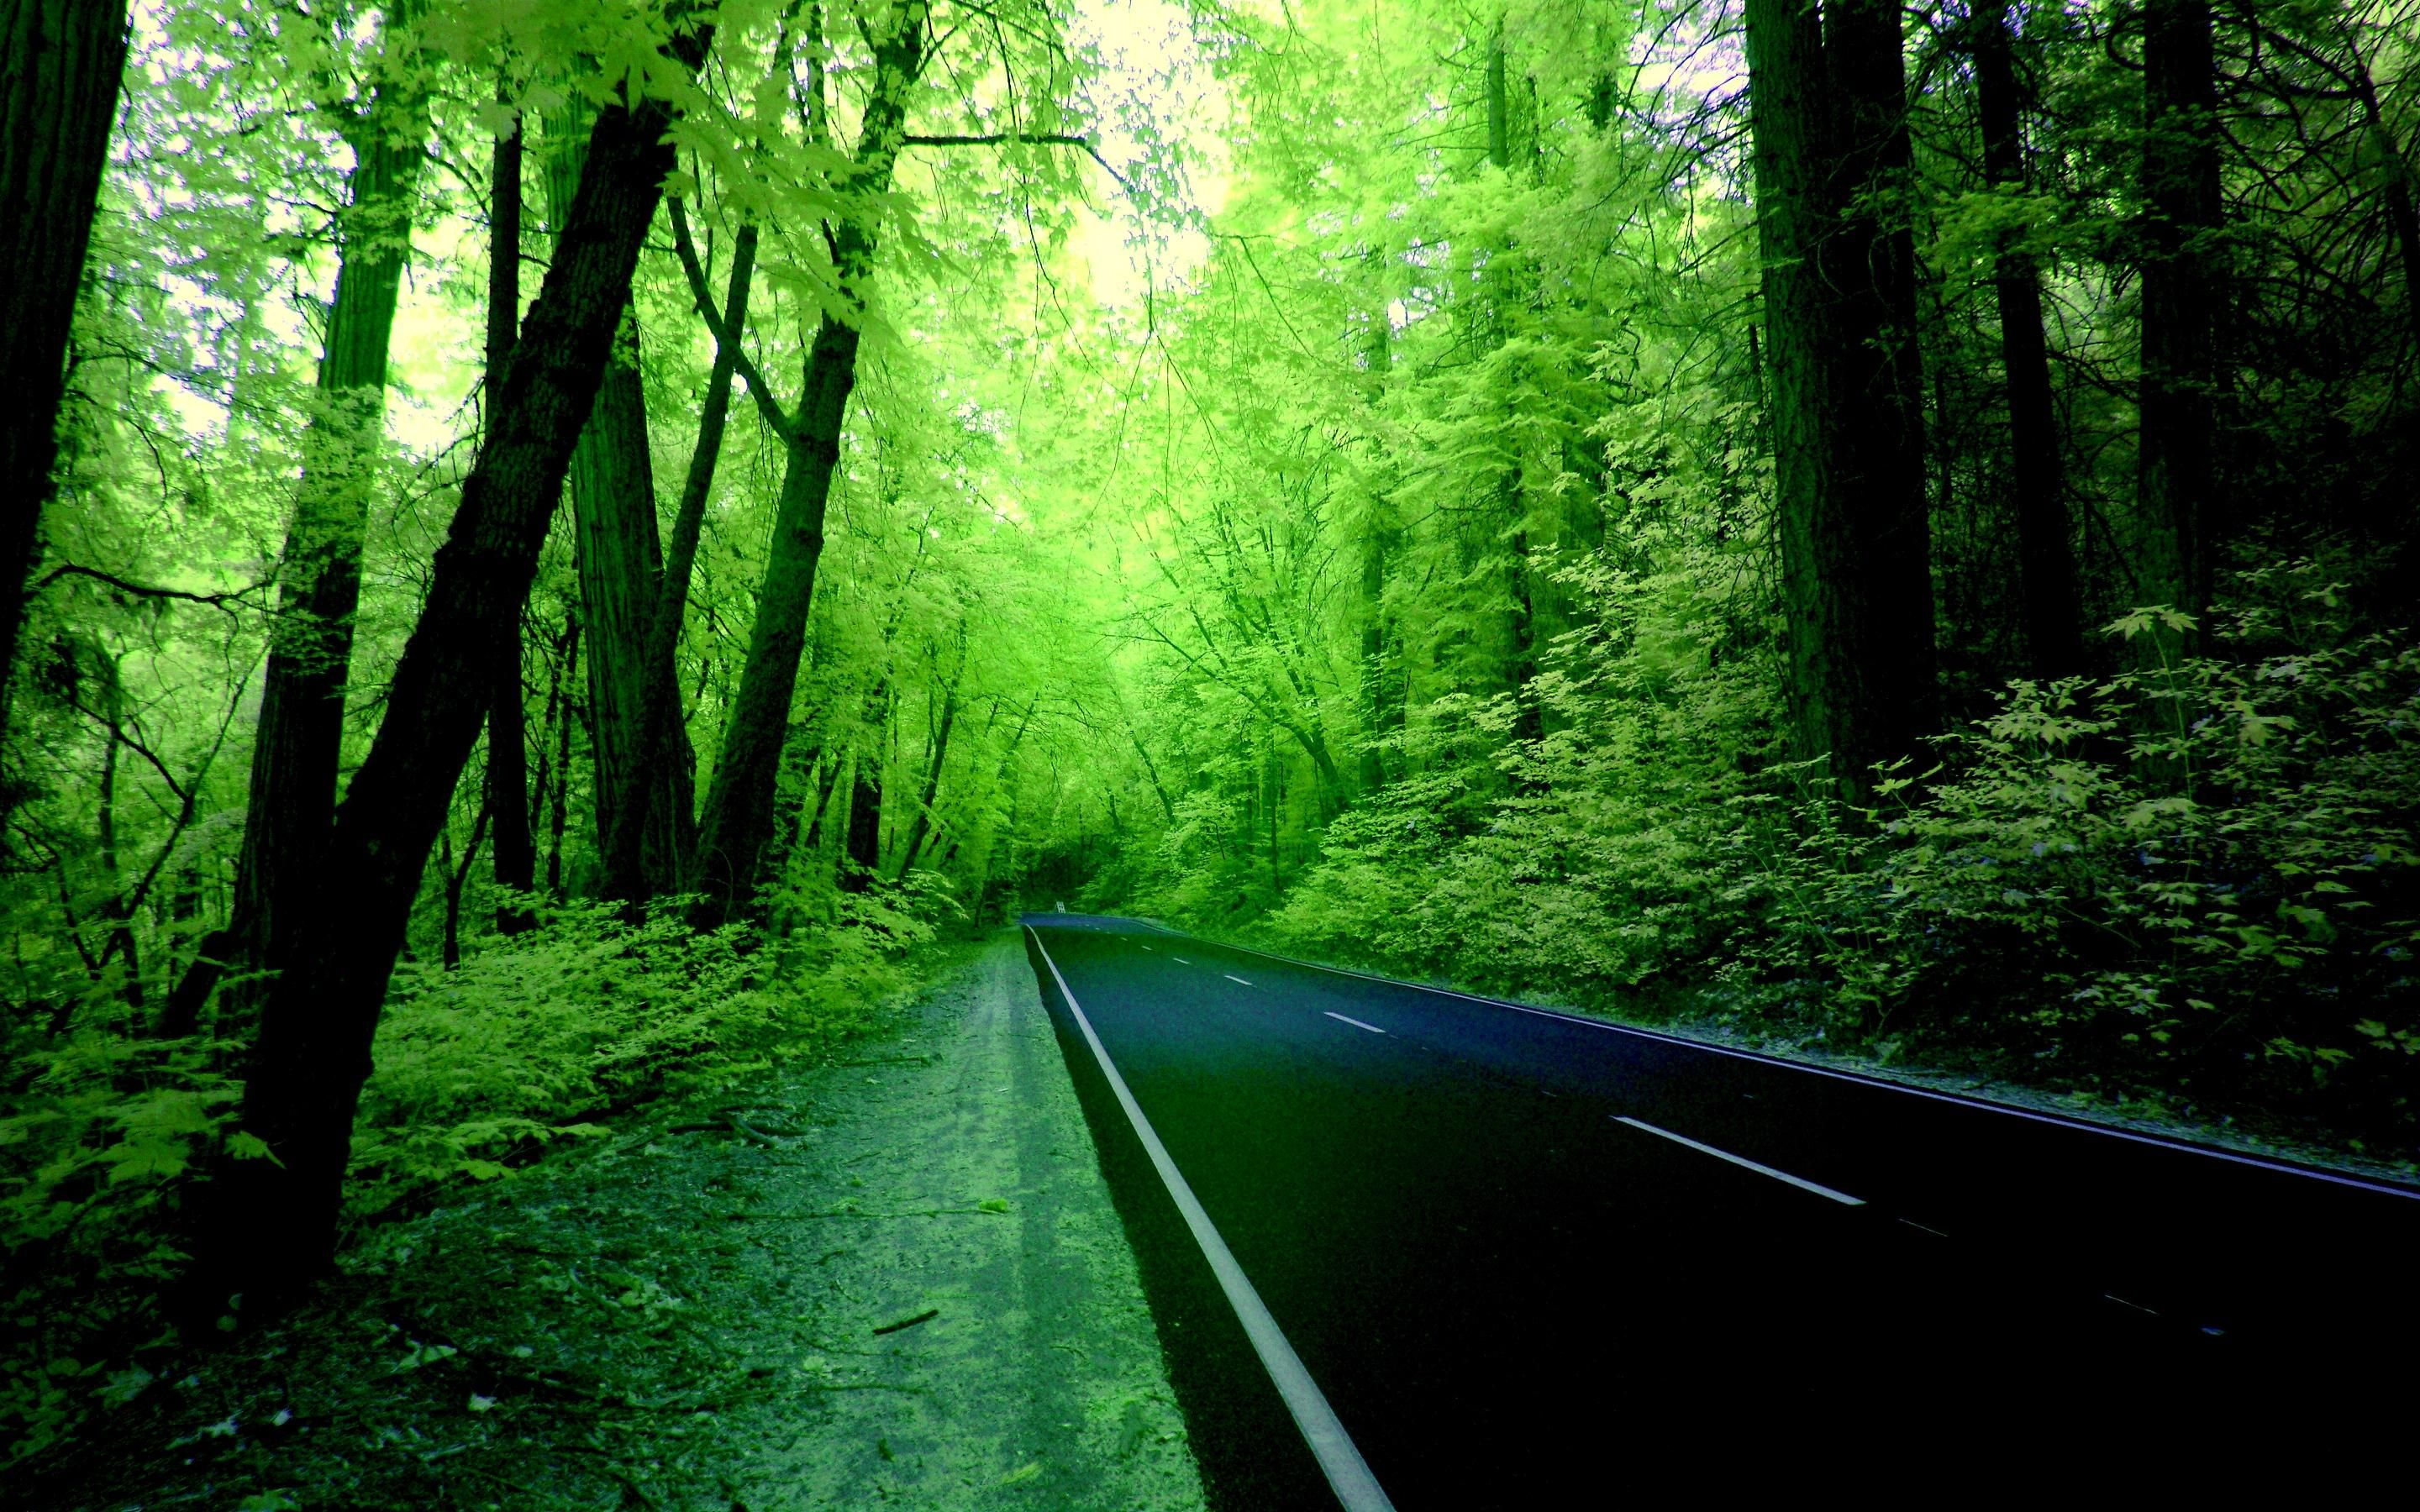 Green forest wallpaper hd background 9 hd wallpapers for Forest wallpaper